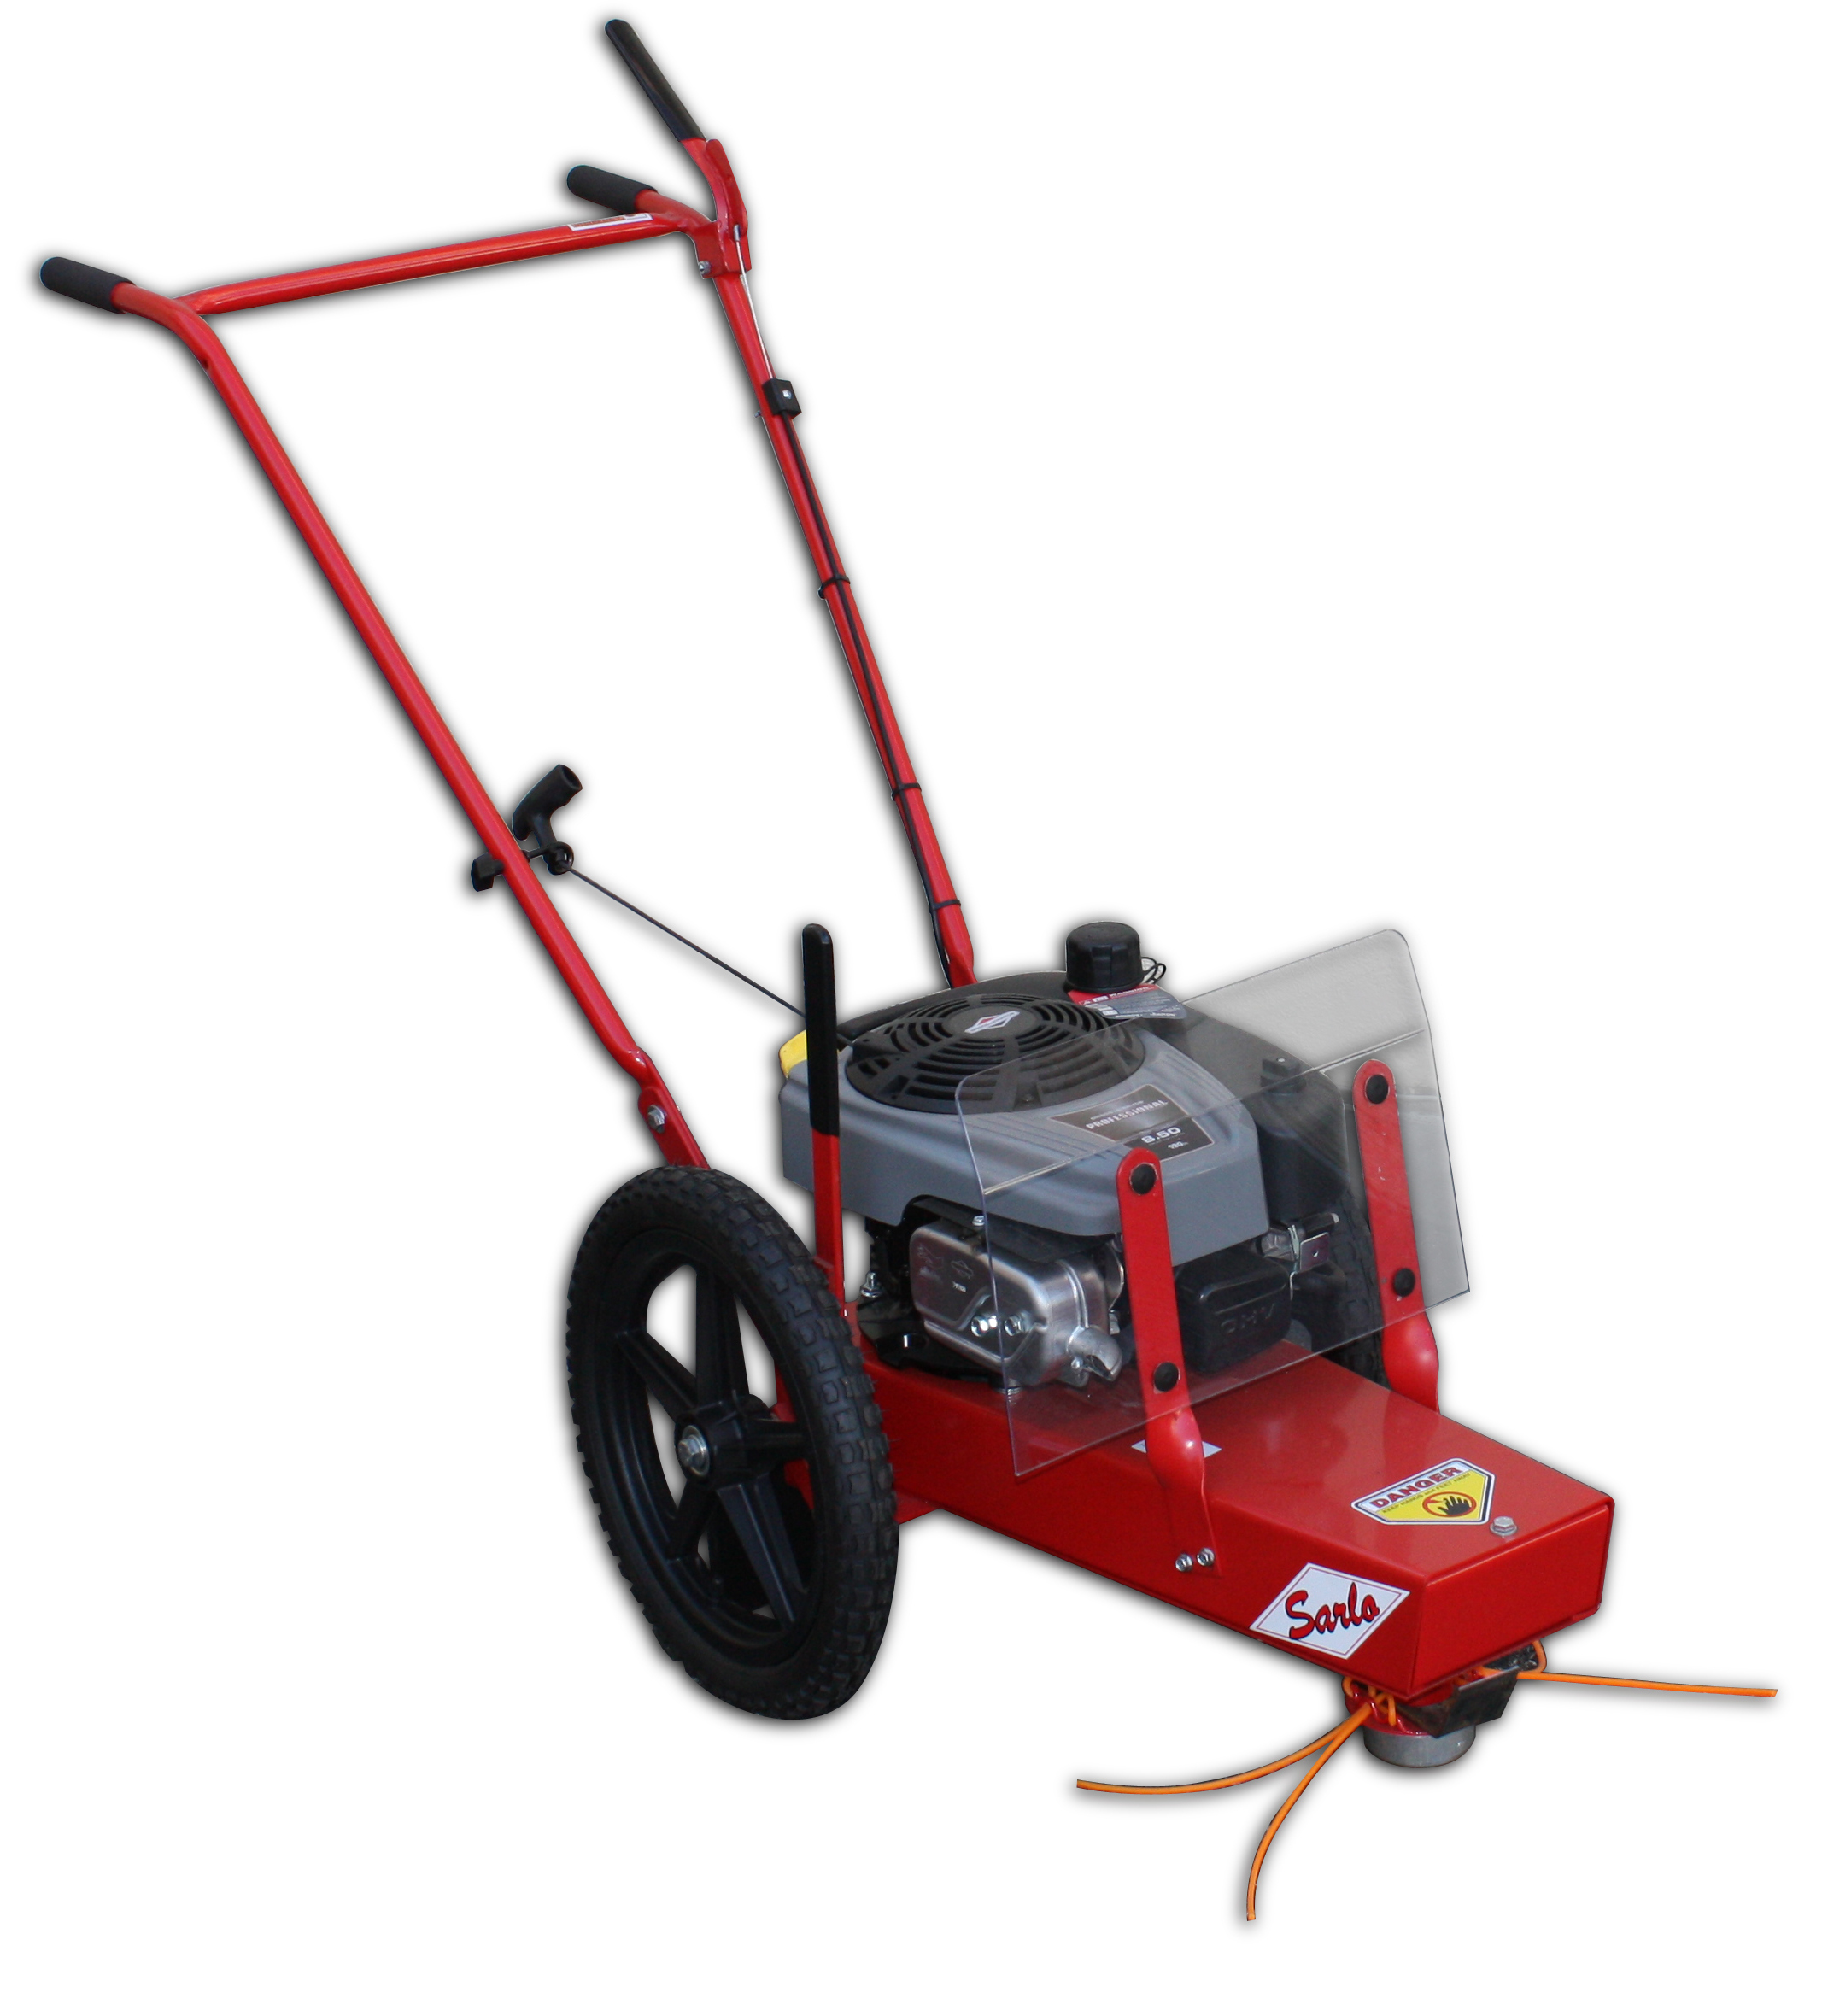 Walk Behind Push String Trimmer With Briggs And Stratton 190cc Engine